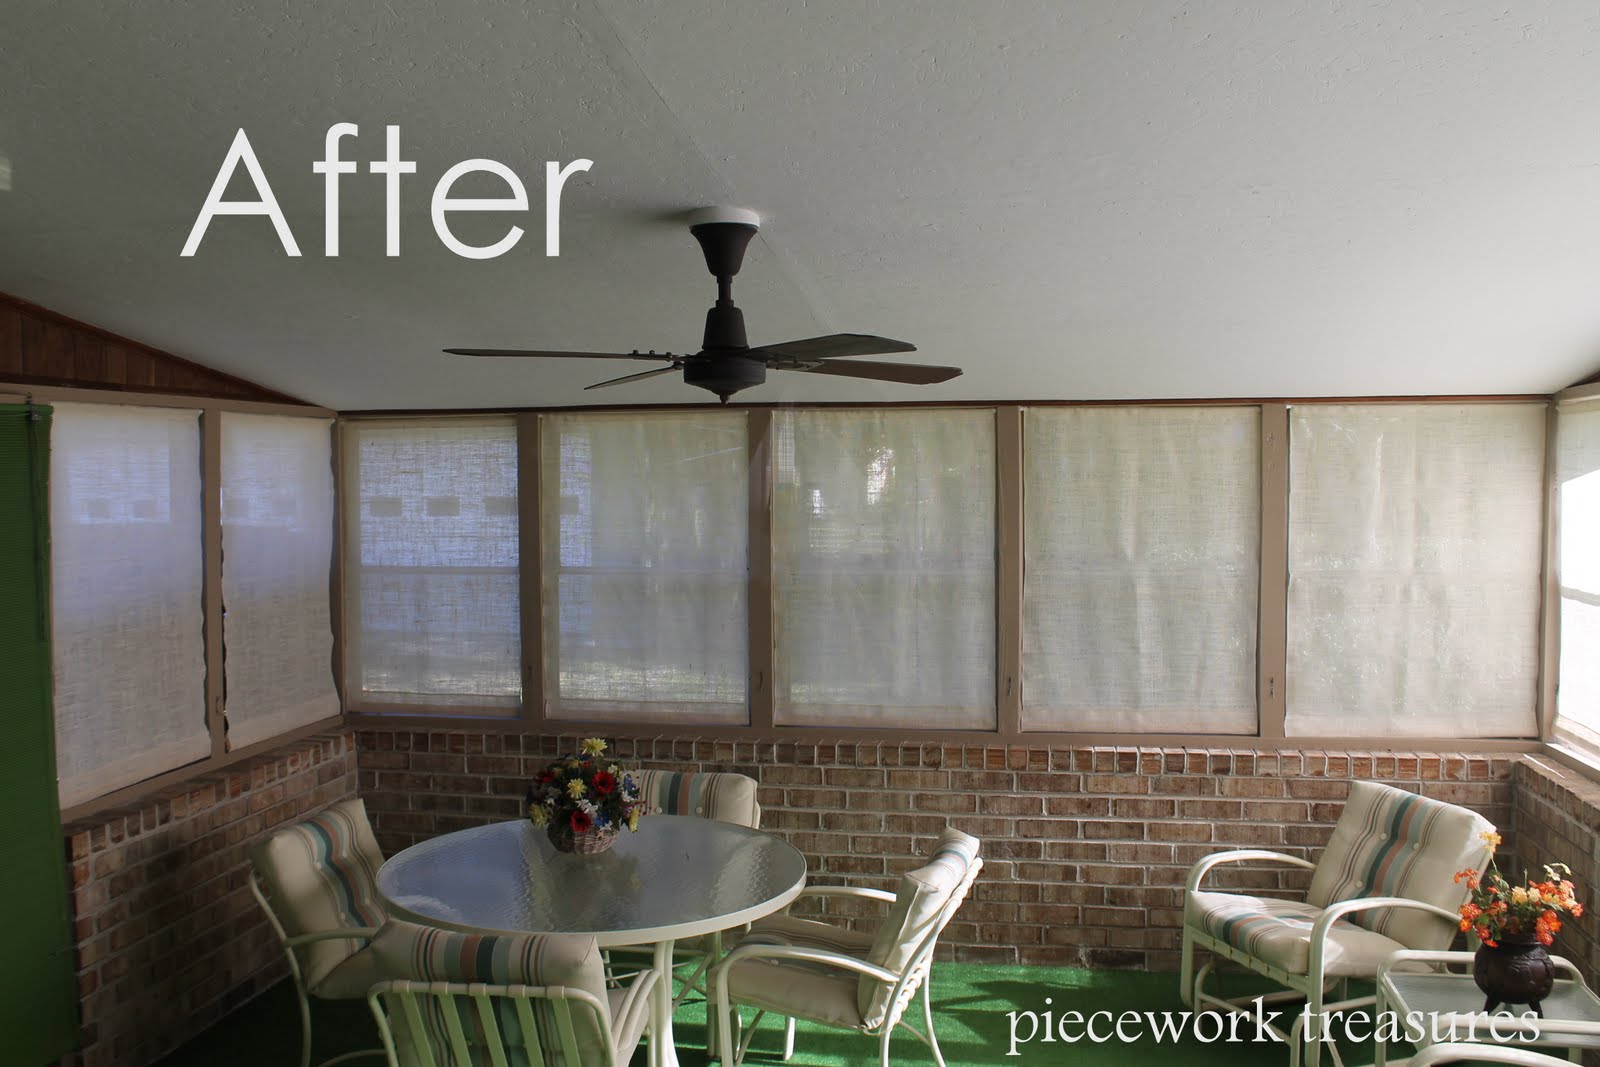 Lisa's Carolina | Handmade: Burlap Window Treatments